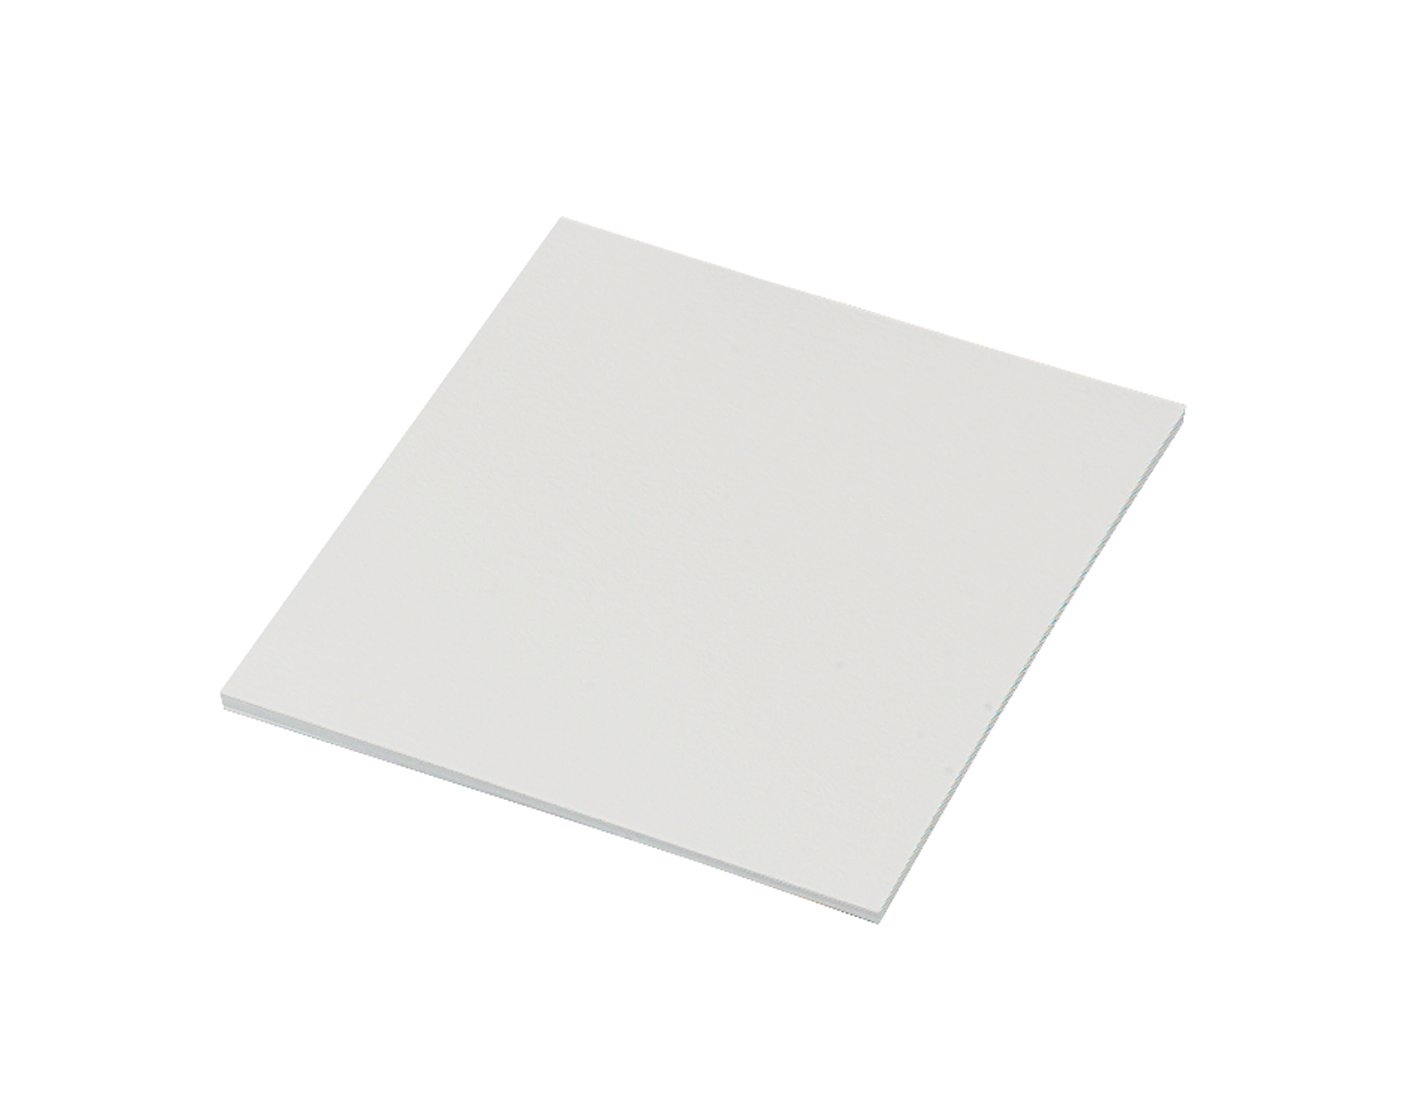 6-10/µm Pore Size Munktell 212 021 Grade 1002 General Purpose Filter Paper Sheet Pack of 100 480mm W x 480mm L